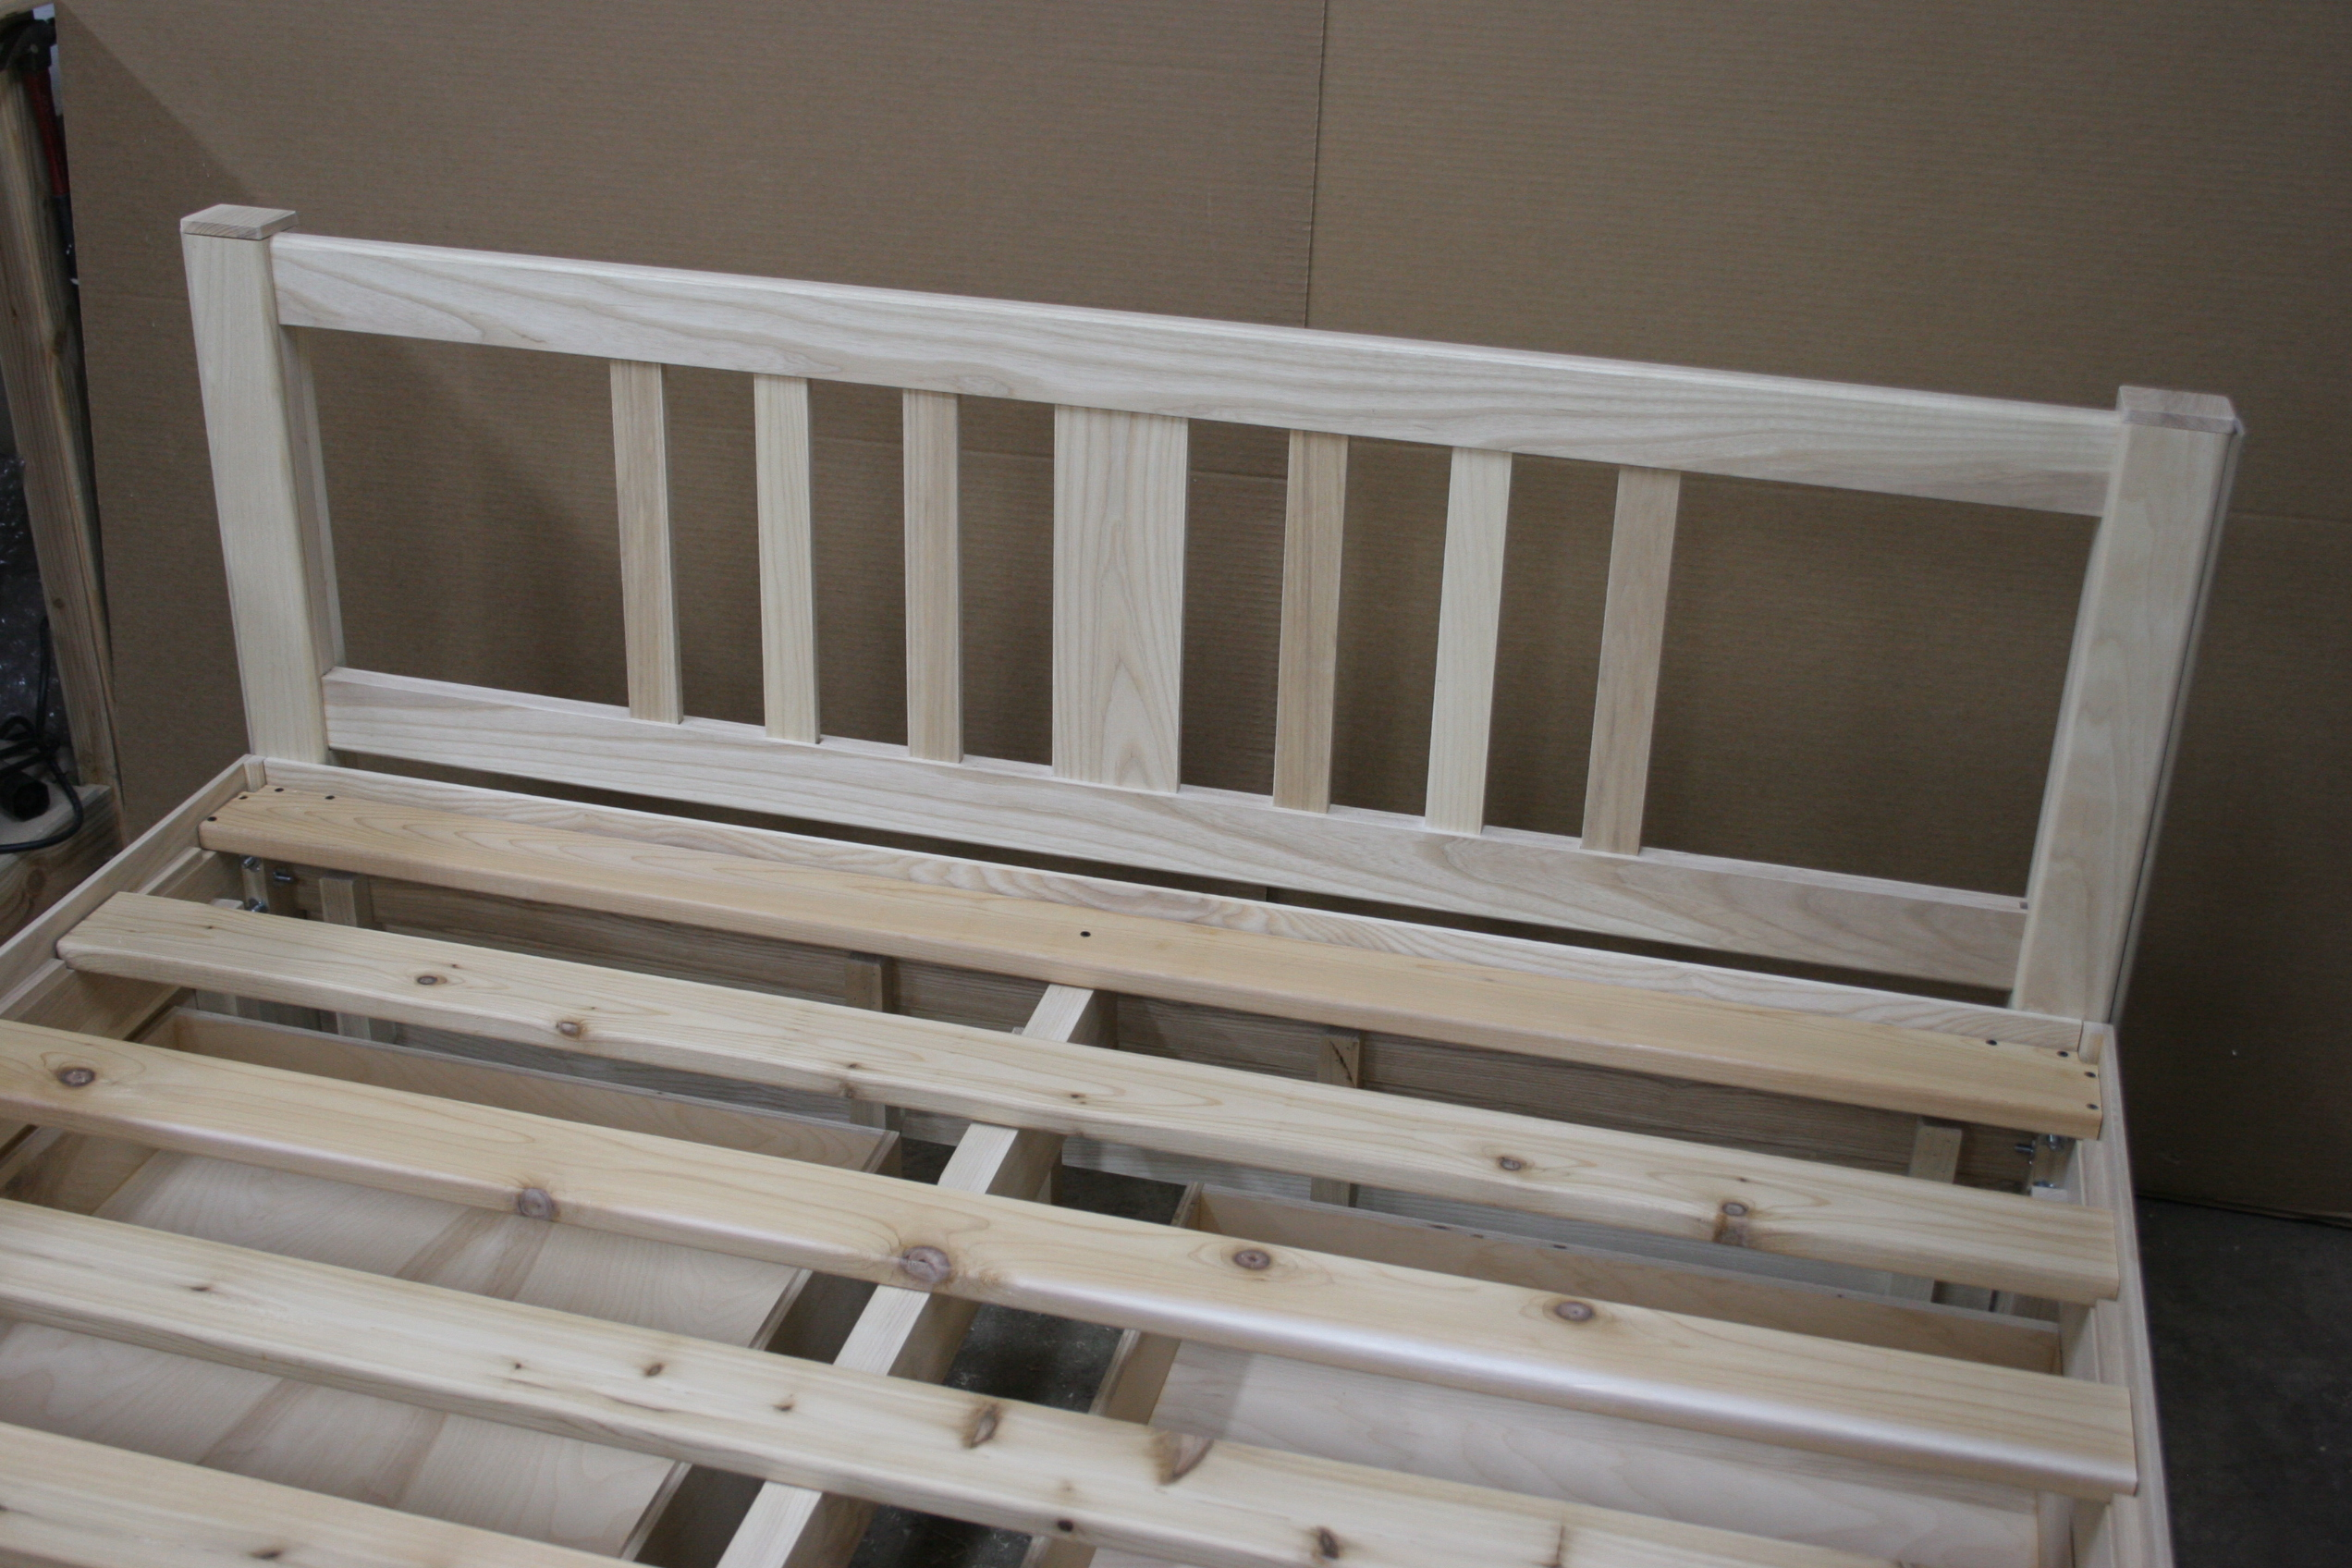 Unfinished ash wide-slat headboard